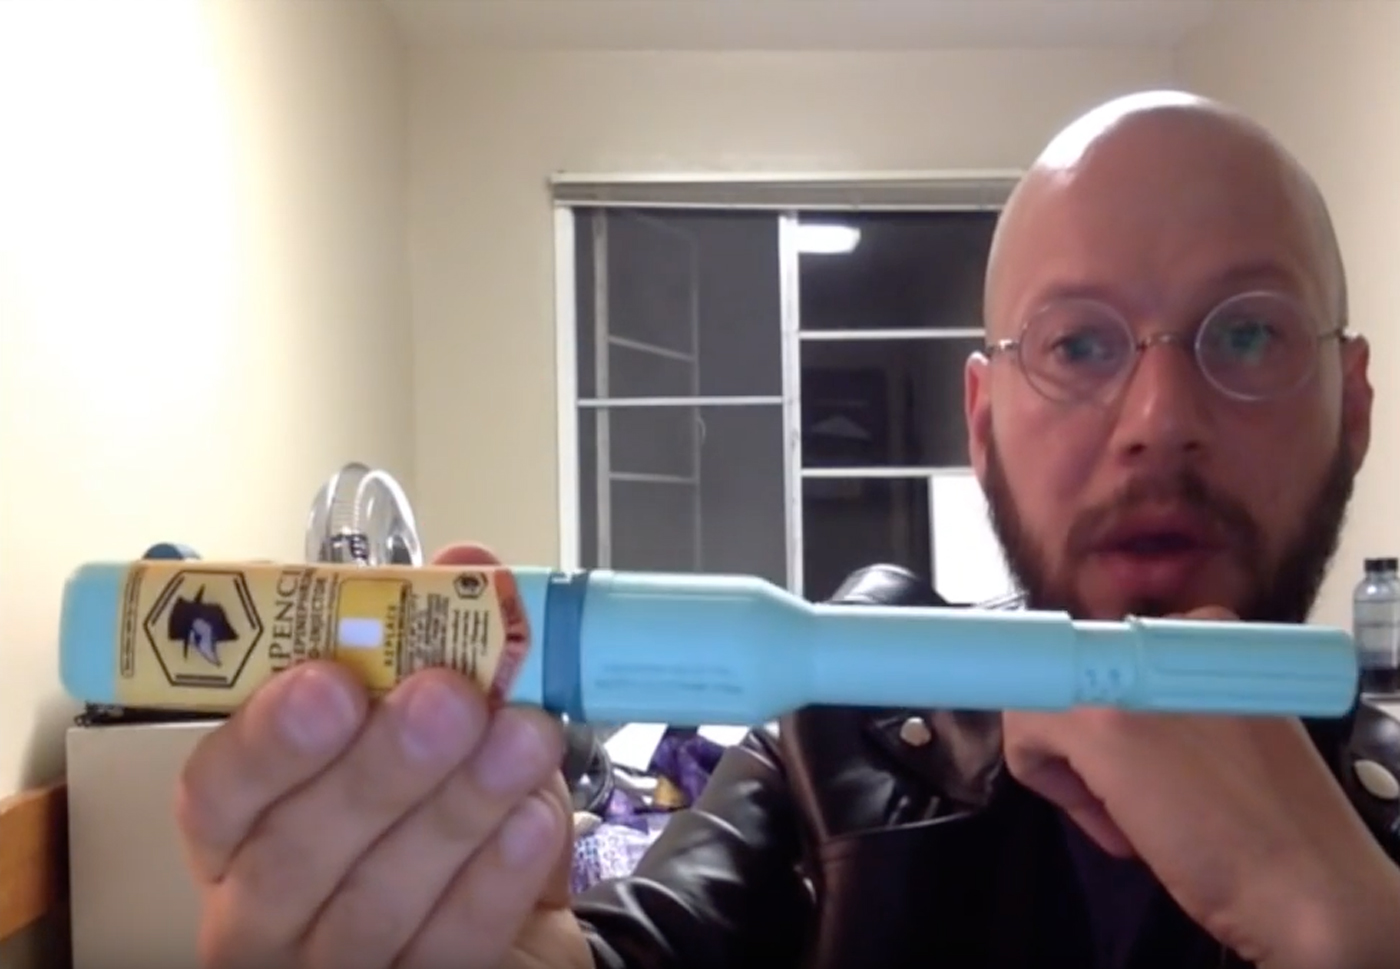 It may not look much, but Four Thieves Vinegar claims that the $30 home-brew EpiPencil works just as well as the official $300 EpiPen.